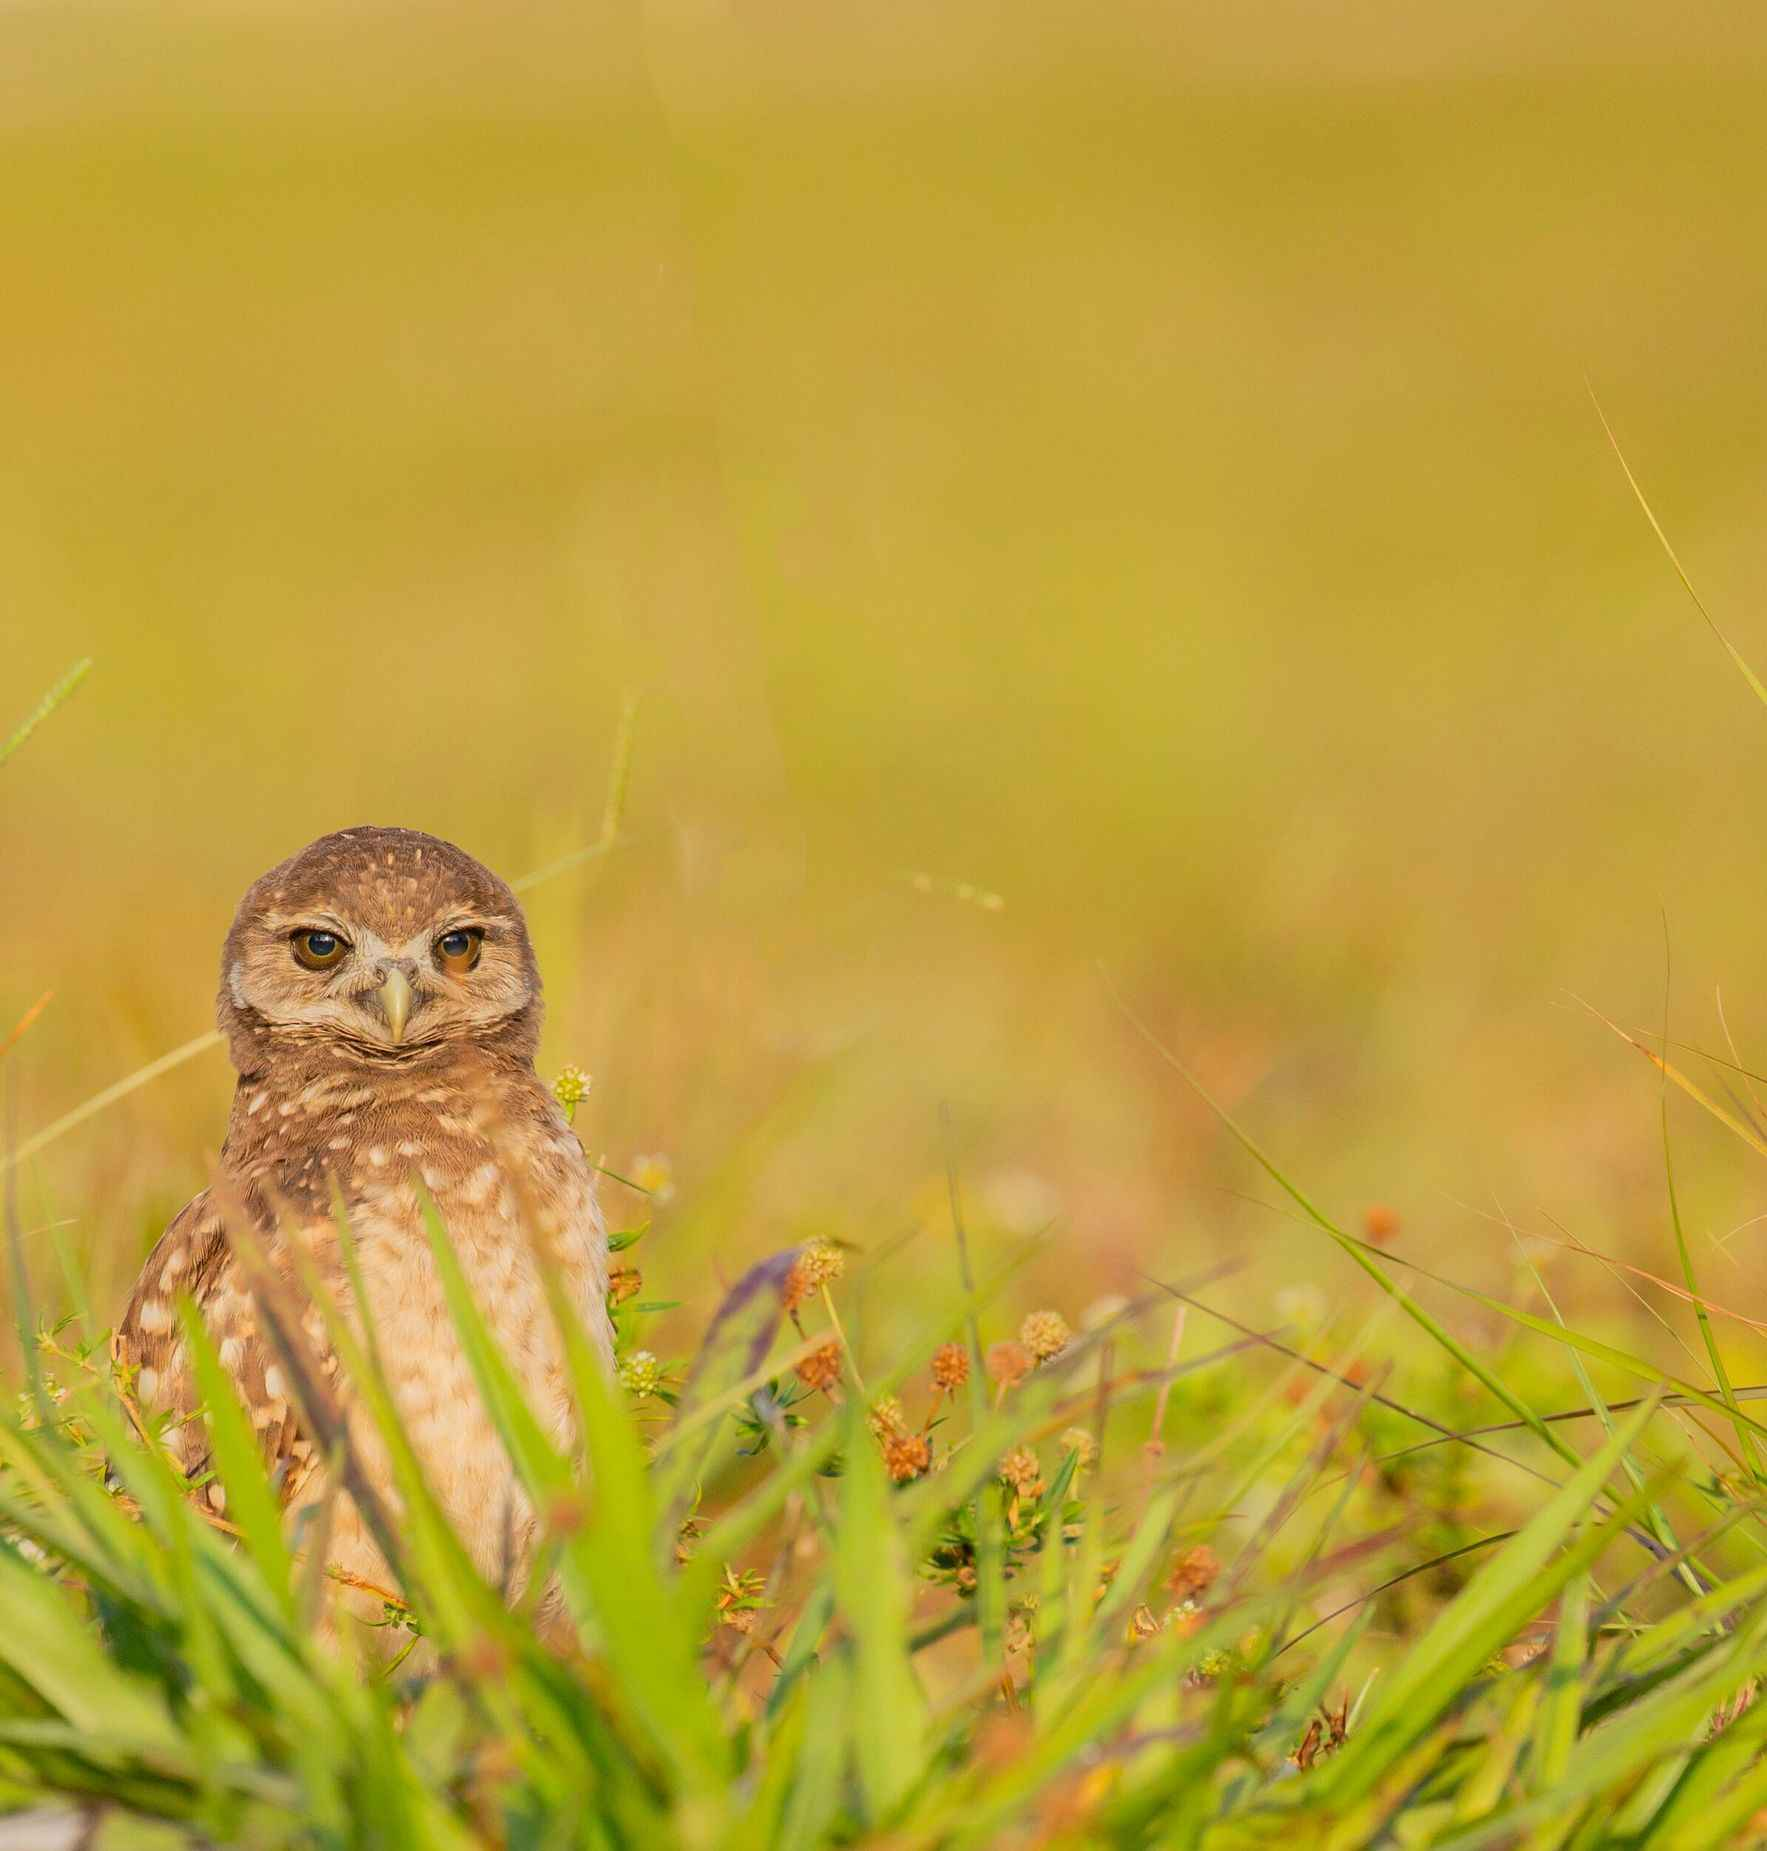 Burrowing Owl Class of 2019: Nesting Results and Program Overview image